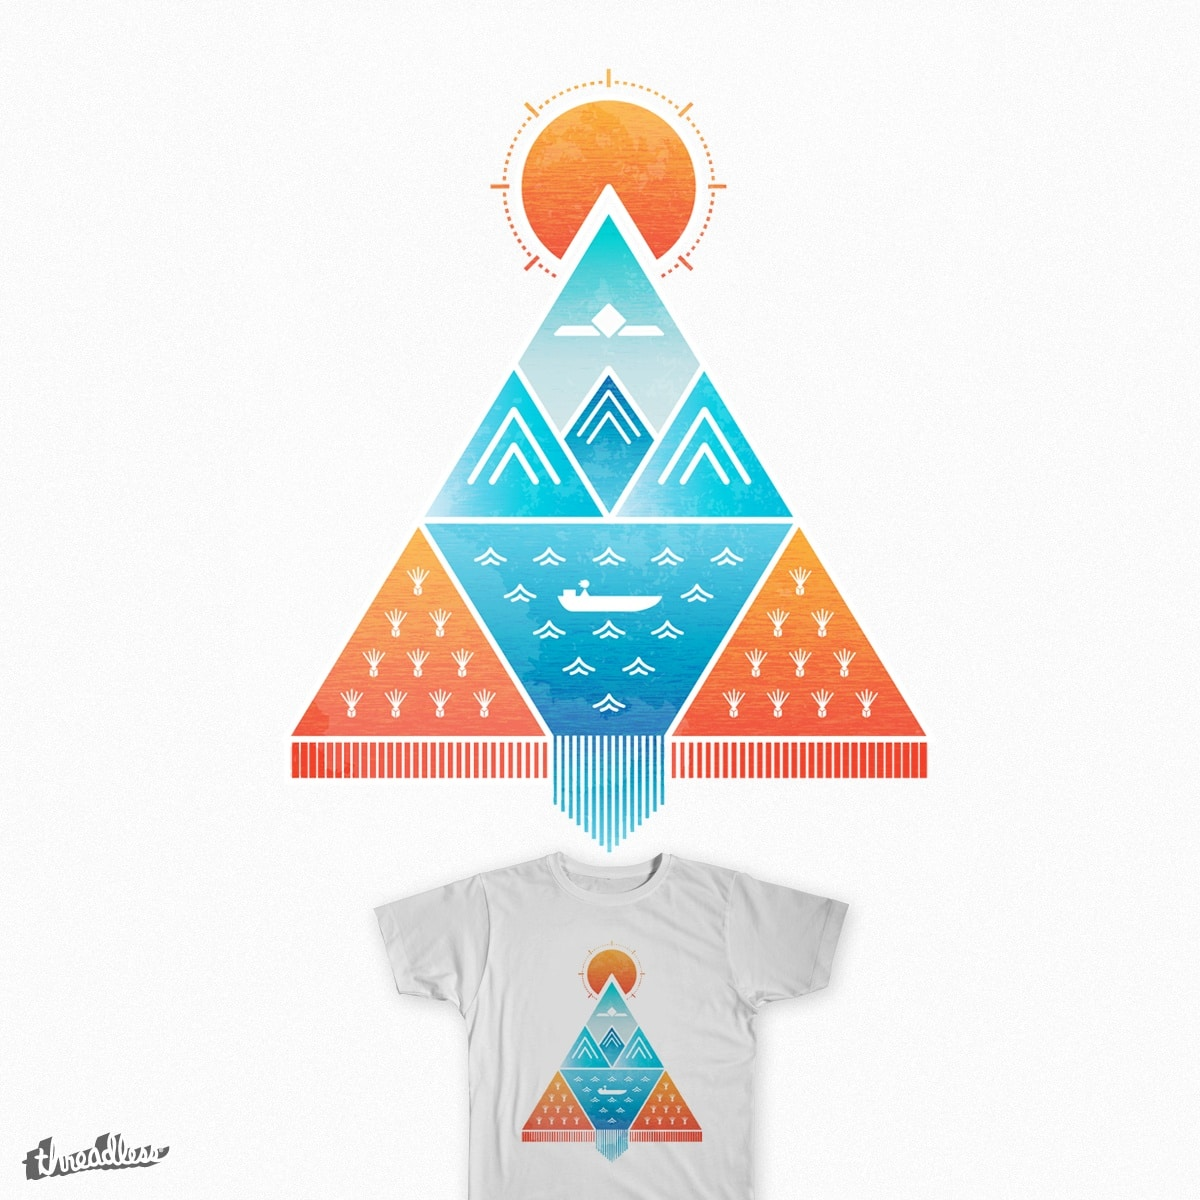 EL GRAN LAGO by janencho on Threadless